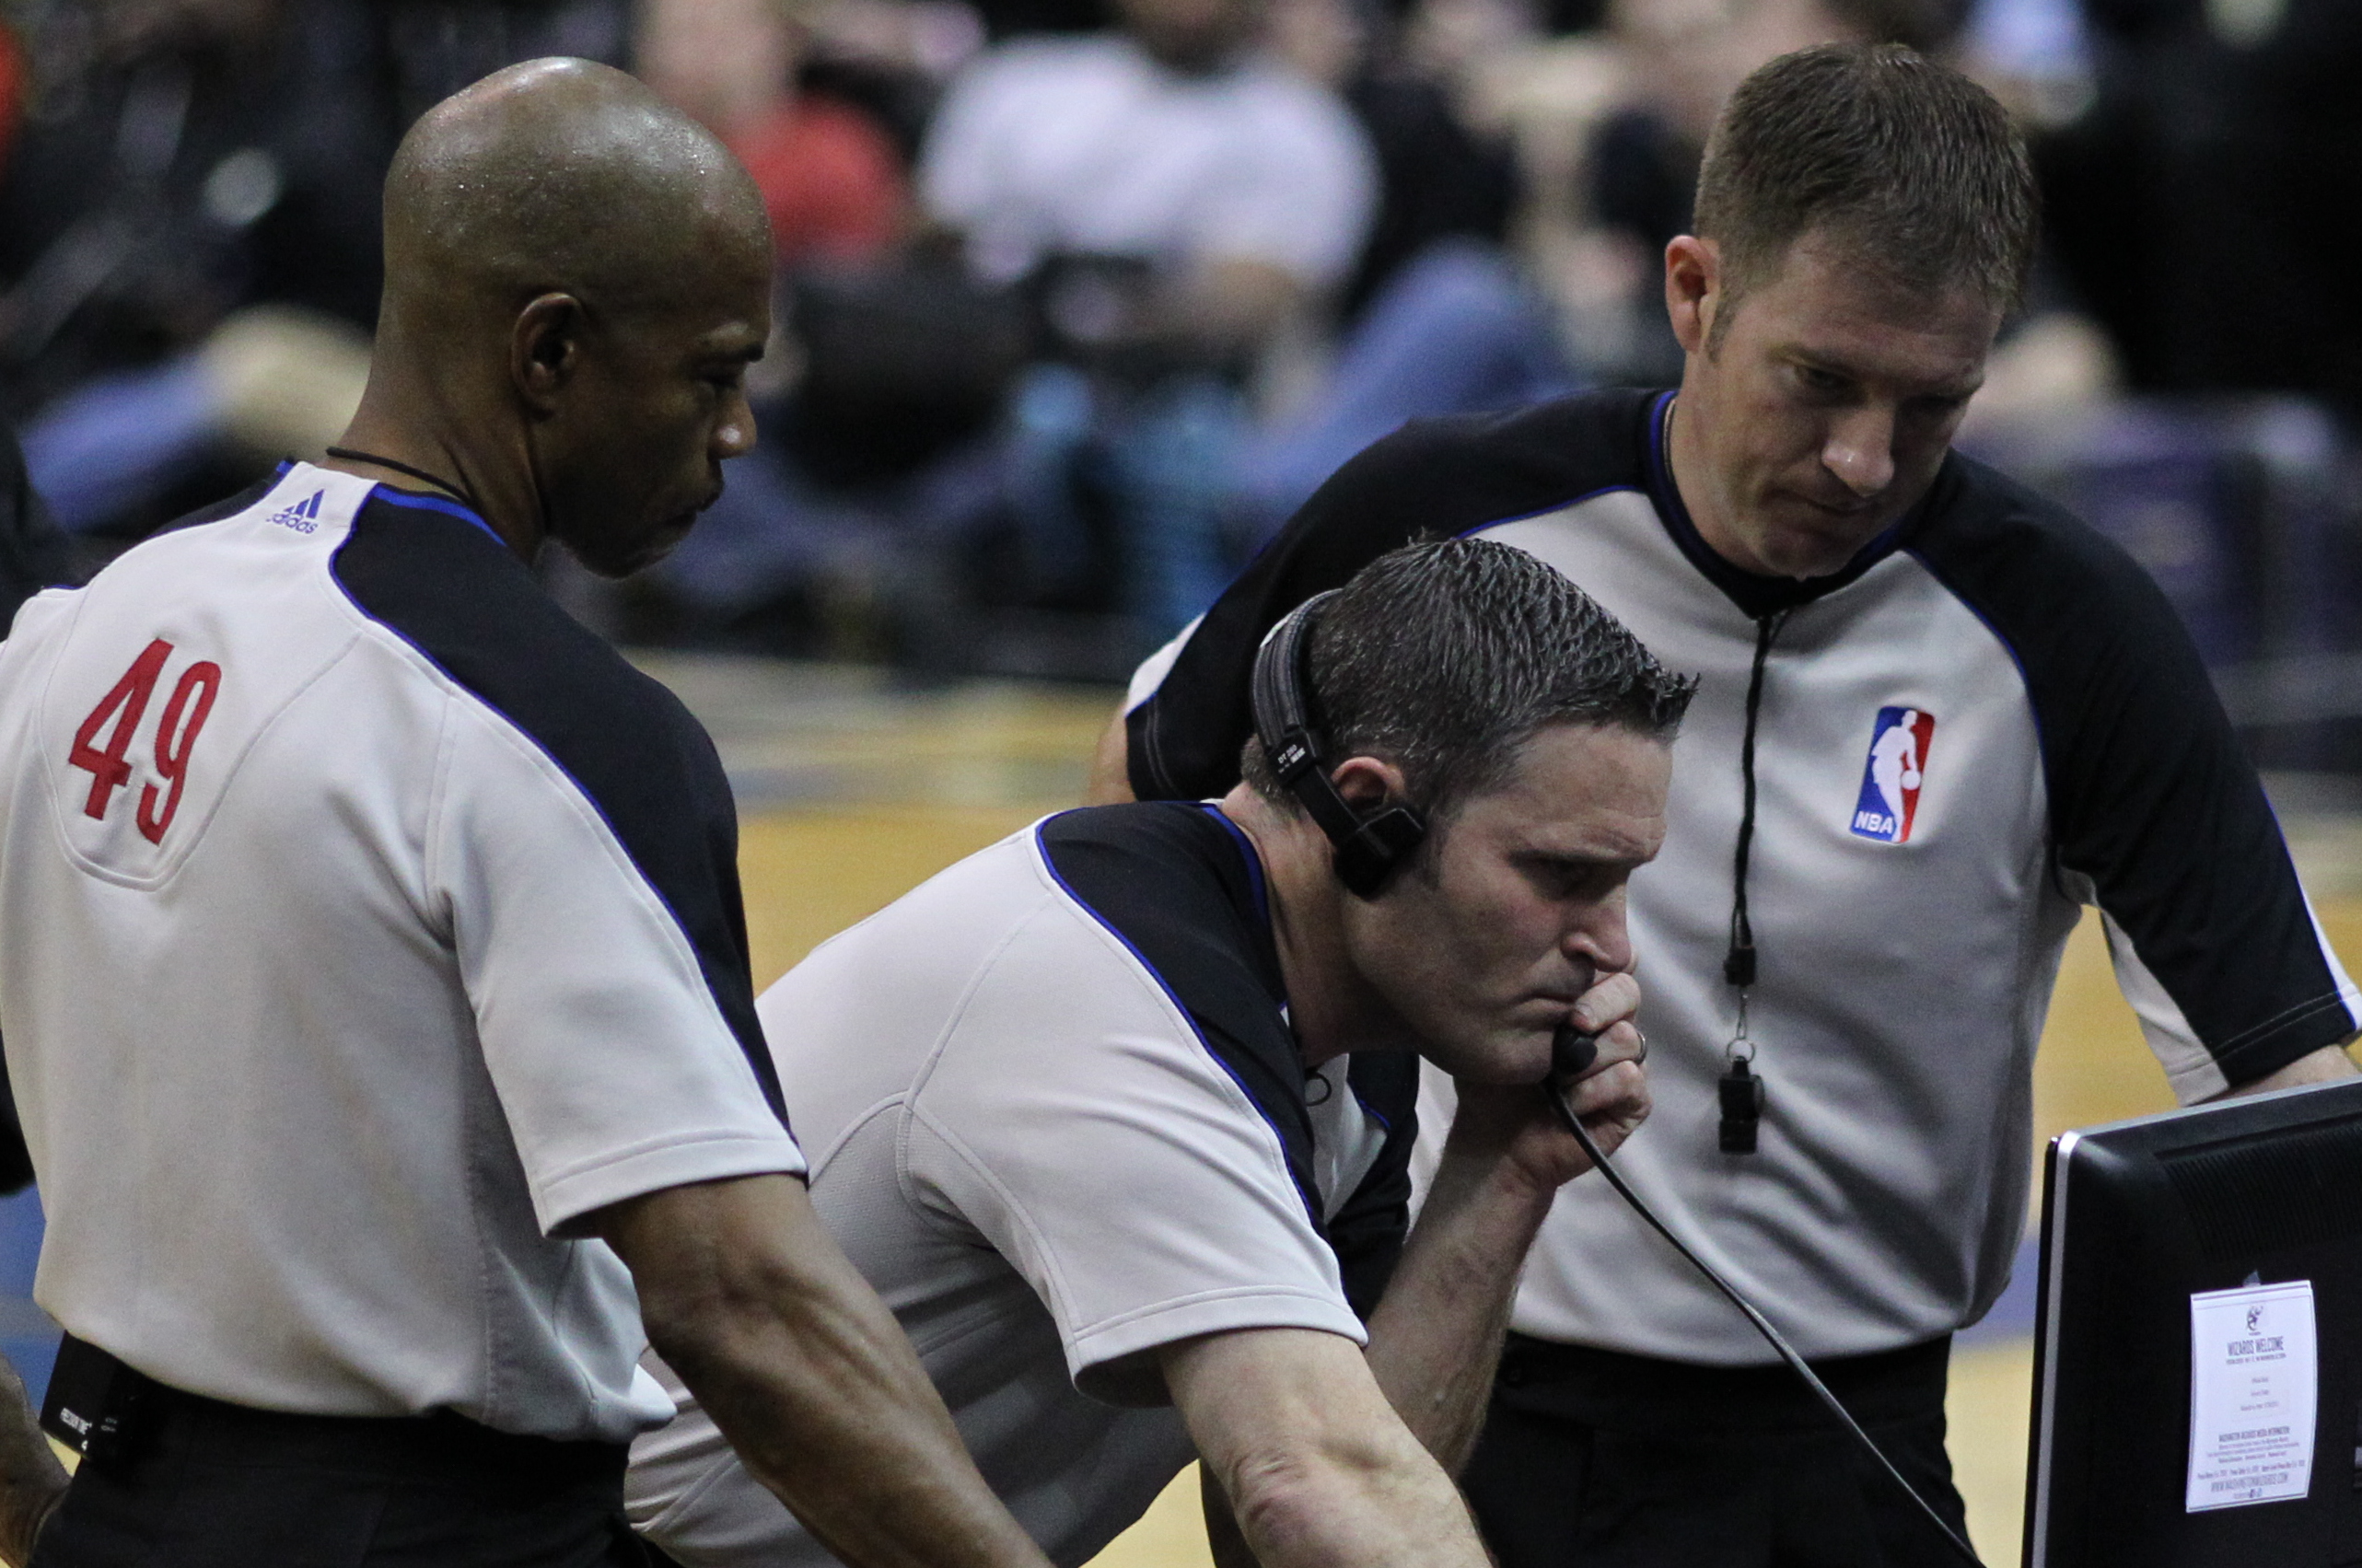 VR Could Improve Visual-Spatial Ability of NBA Refs | Inverse